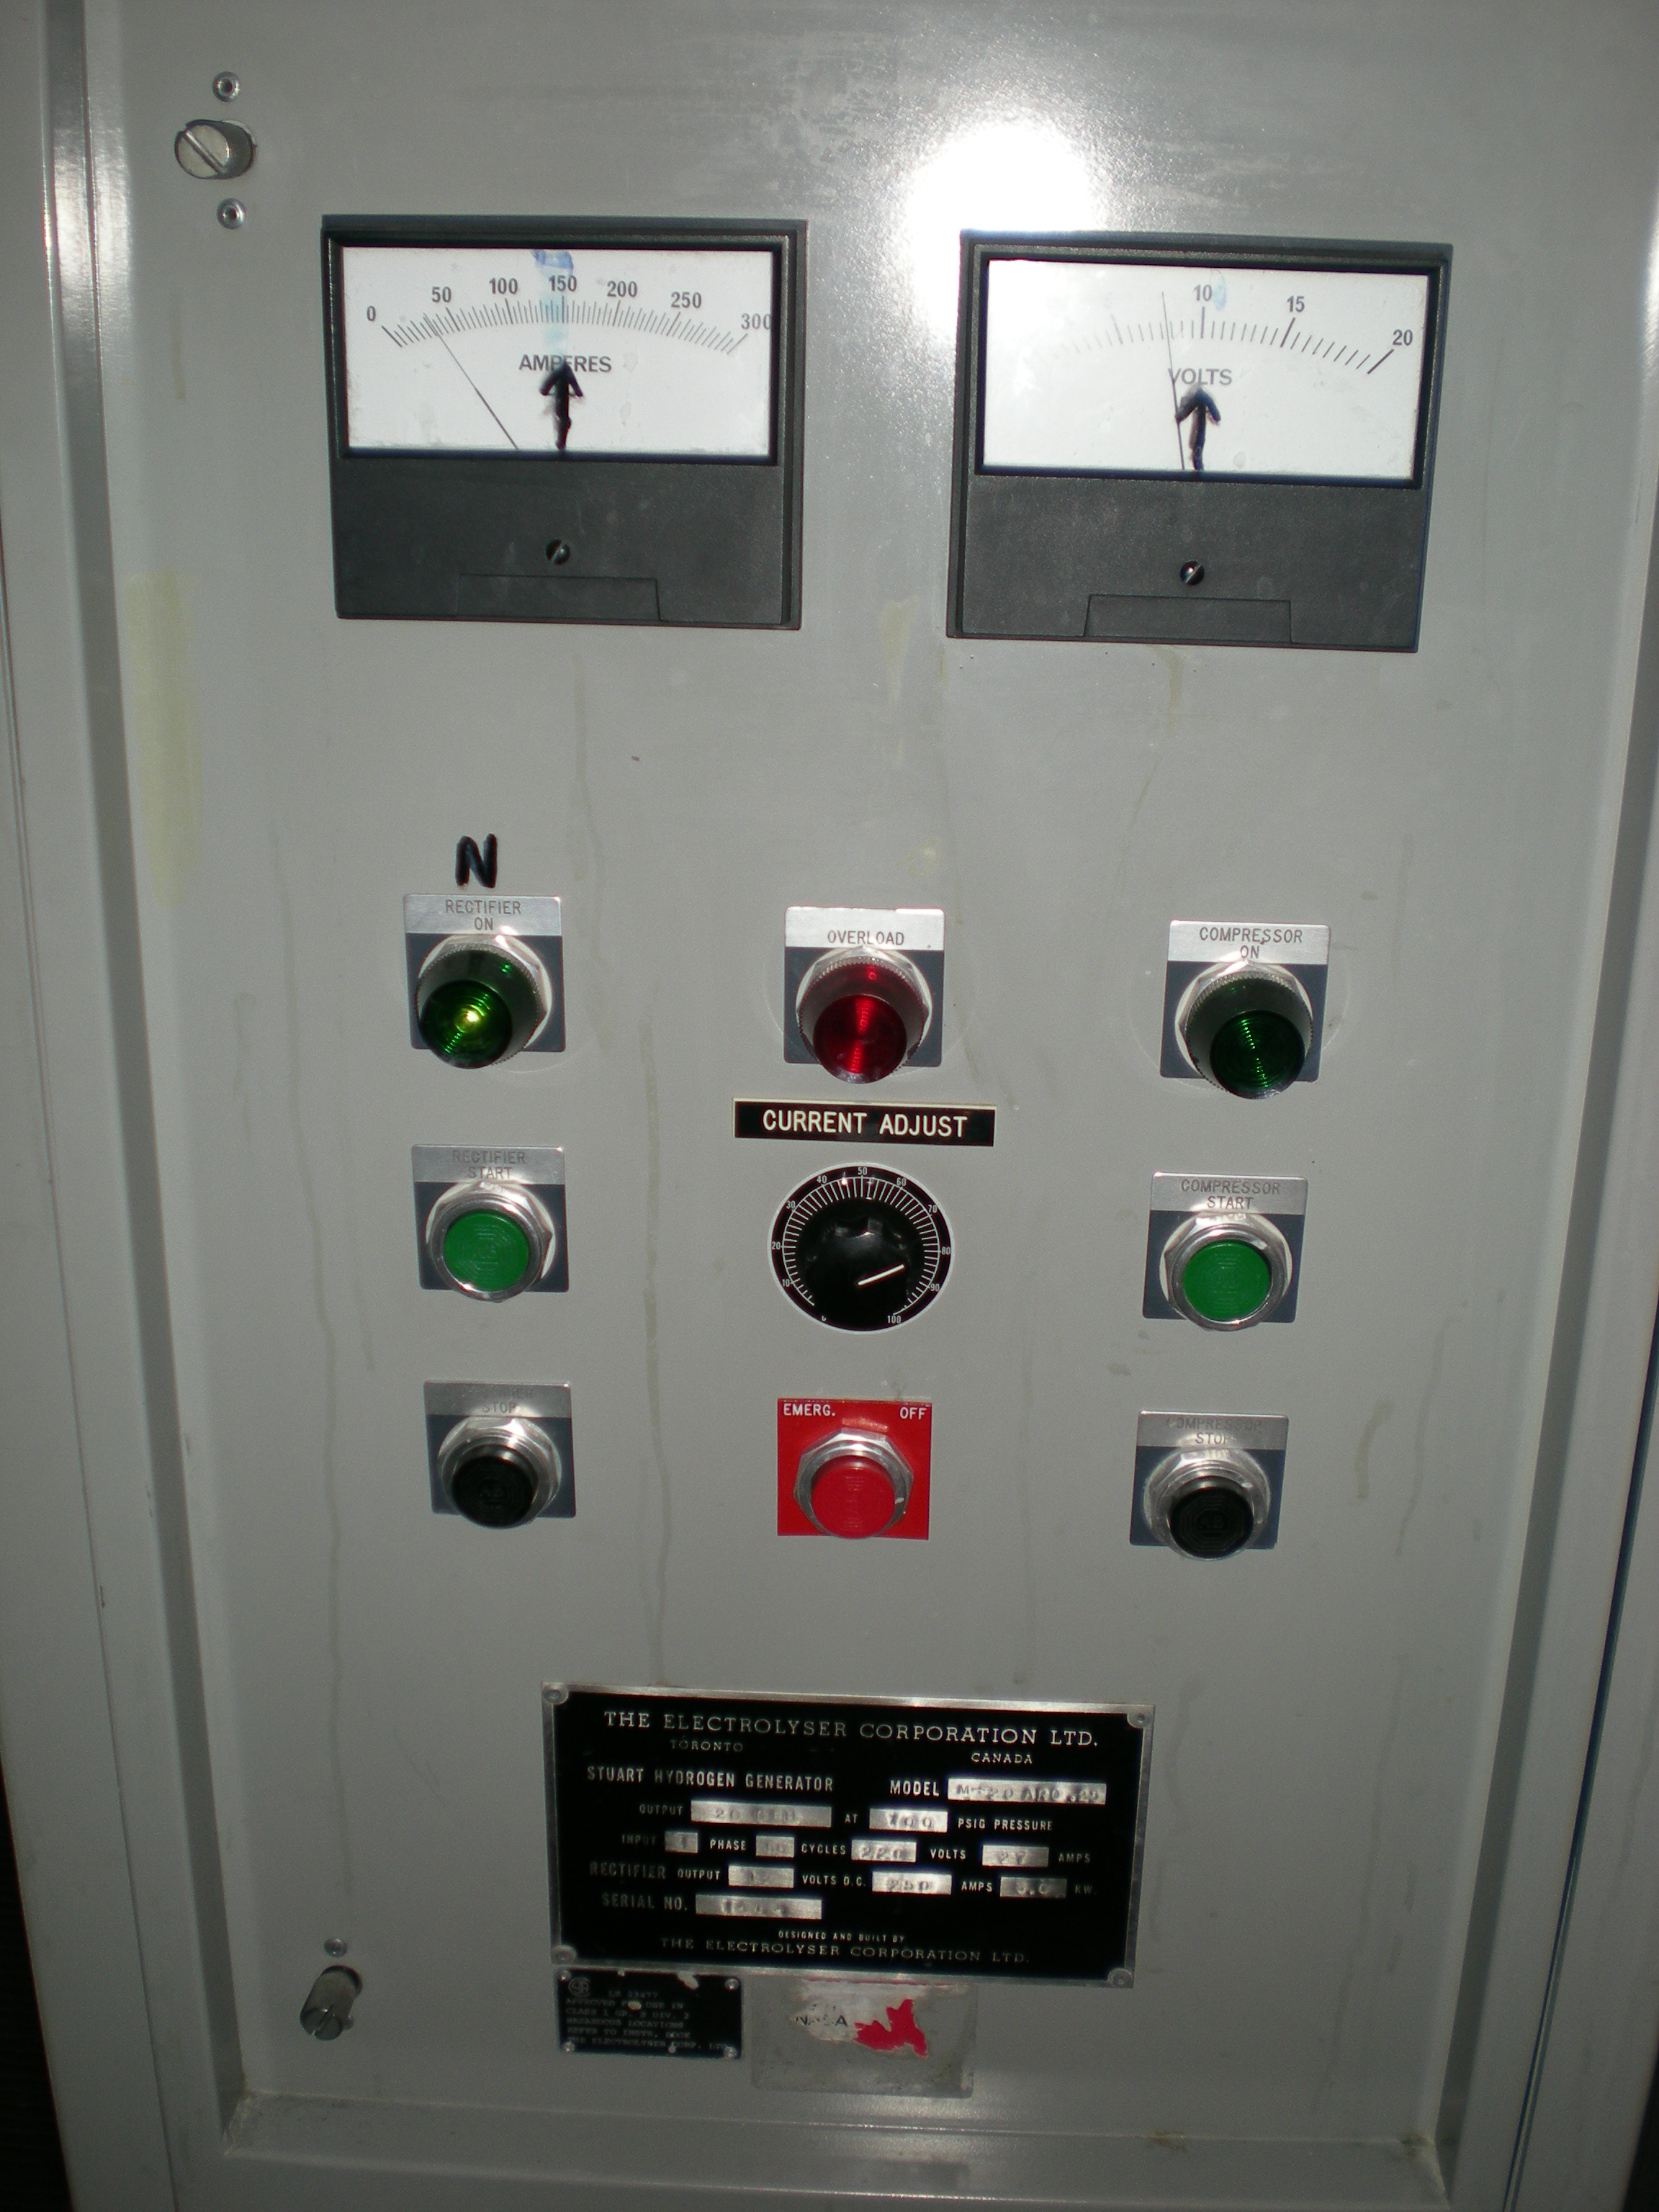 File:Electrical panel.jpg - Wikimedia Commons